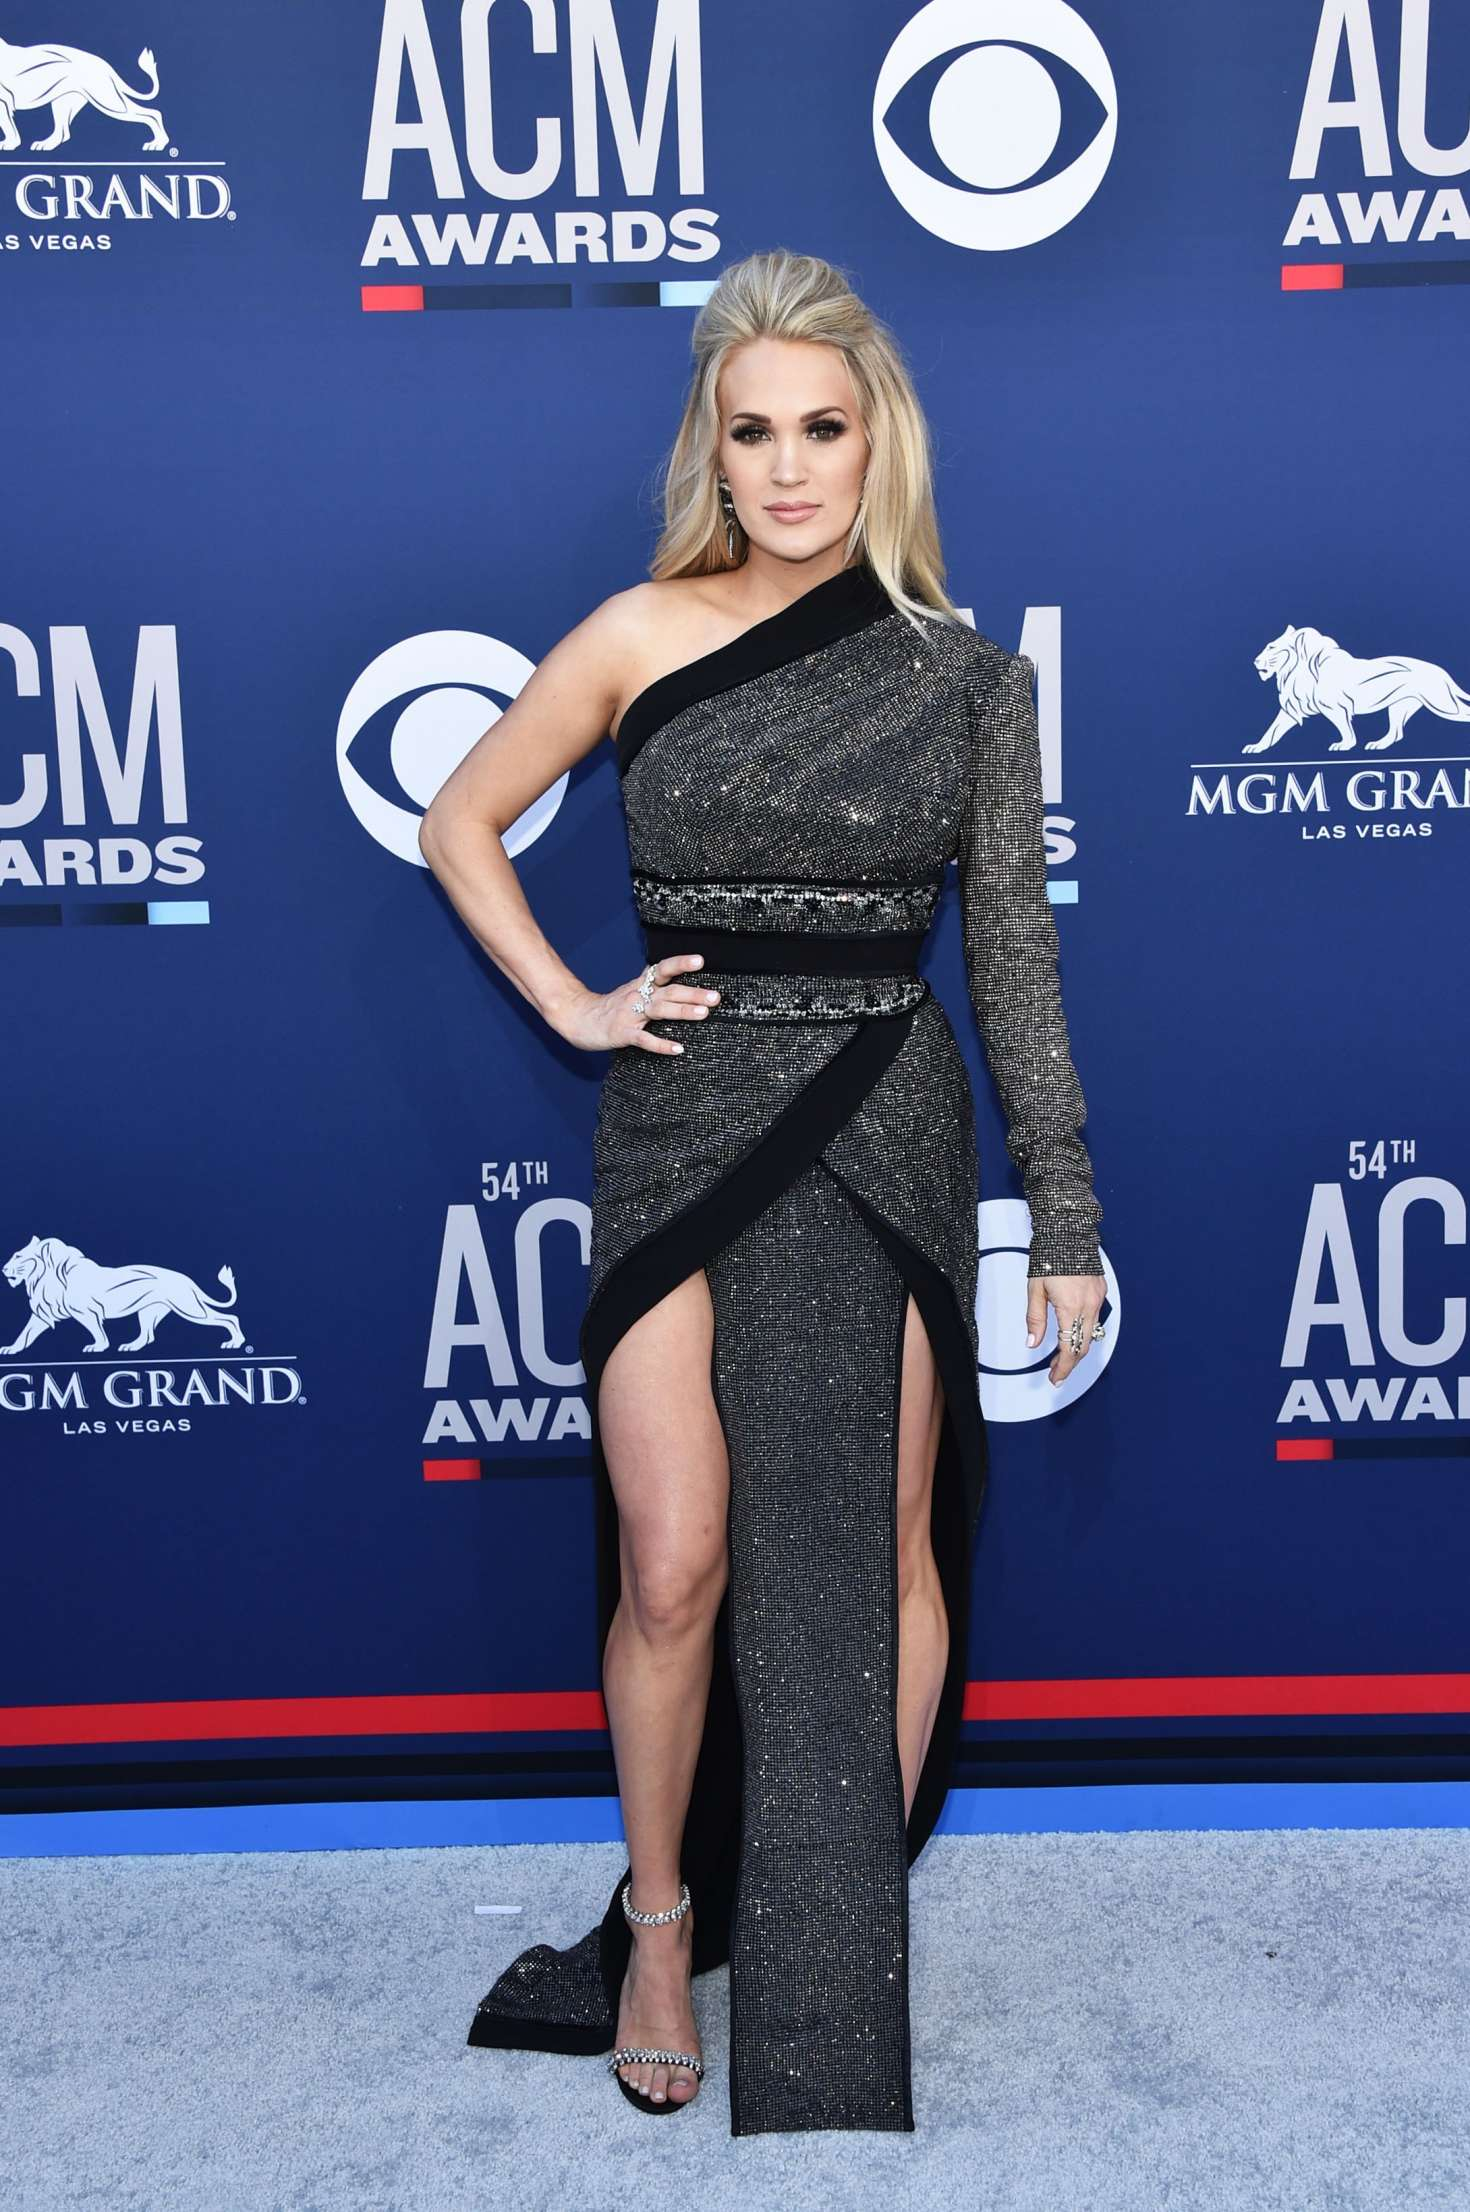 Carrie Underwood 2019 : Carrie Underwood: 2019 Academy of Country Music Awards -06